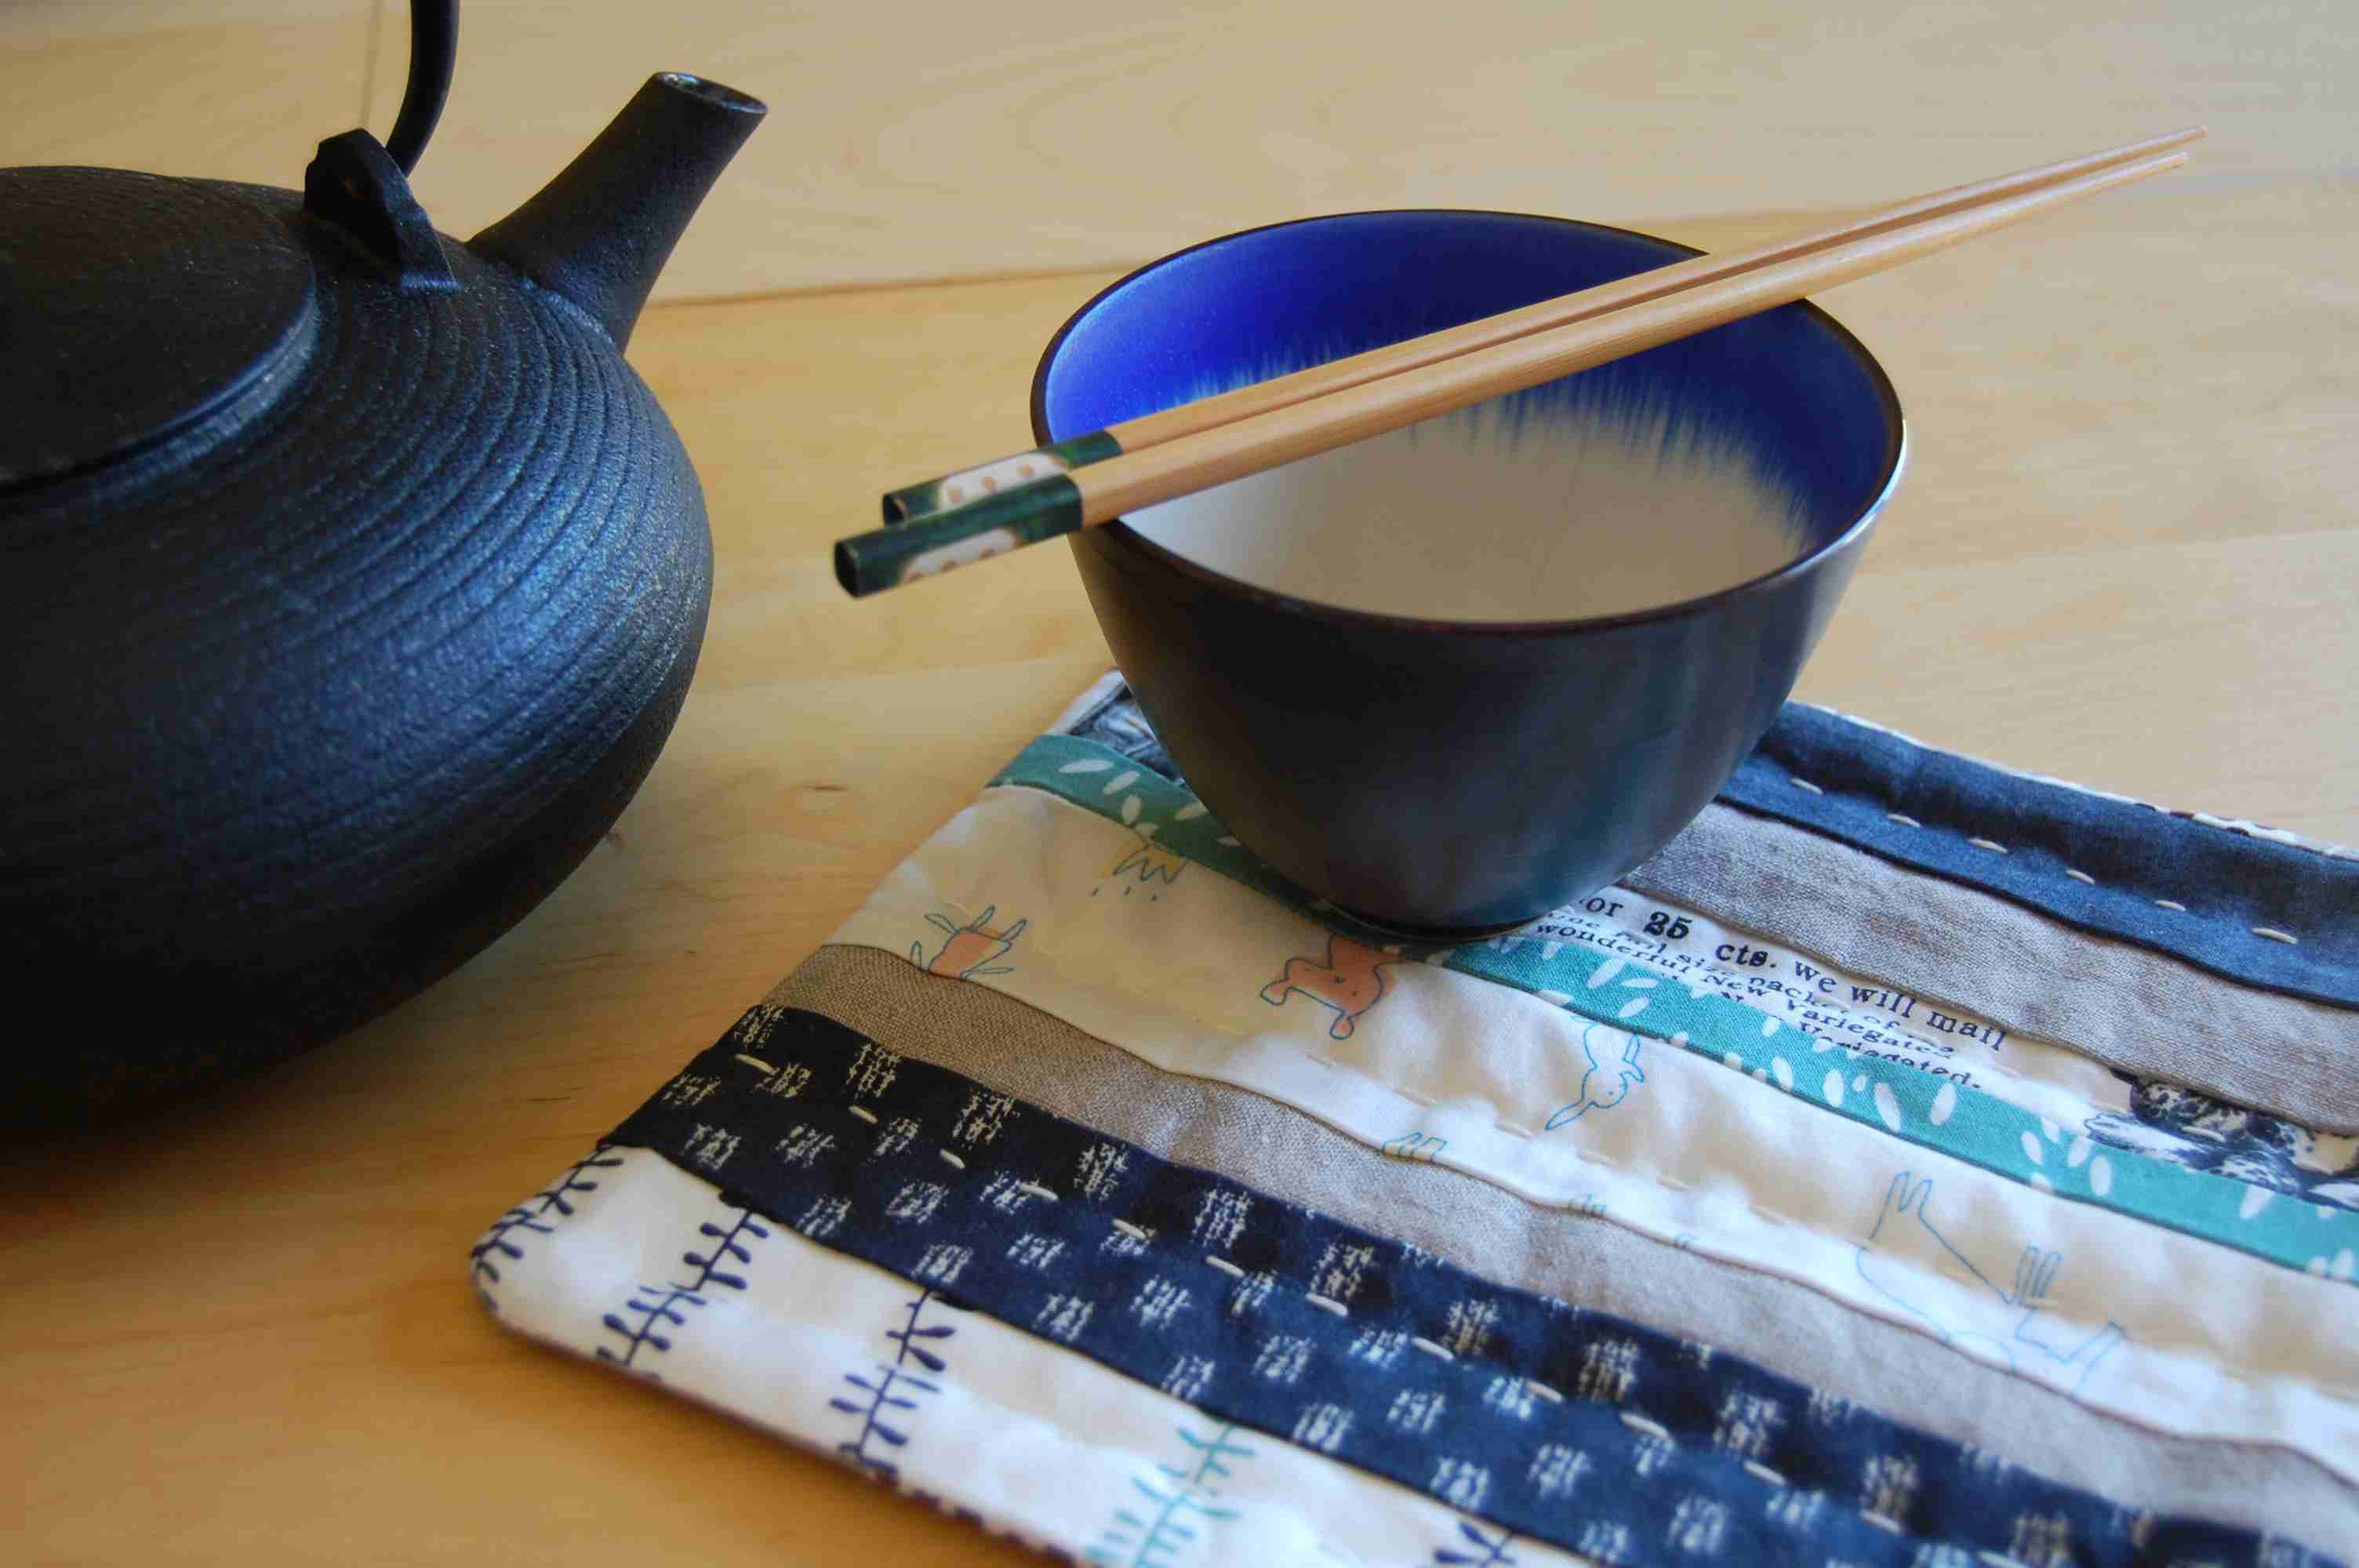 A scrappy pot holder with a bowl, chopsticks, and tea kettle on a table